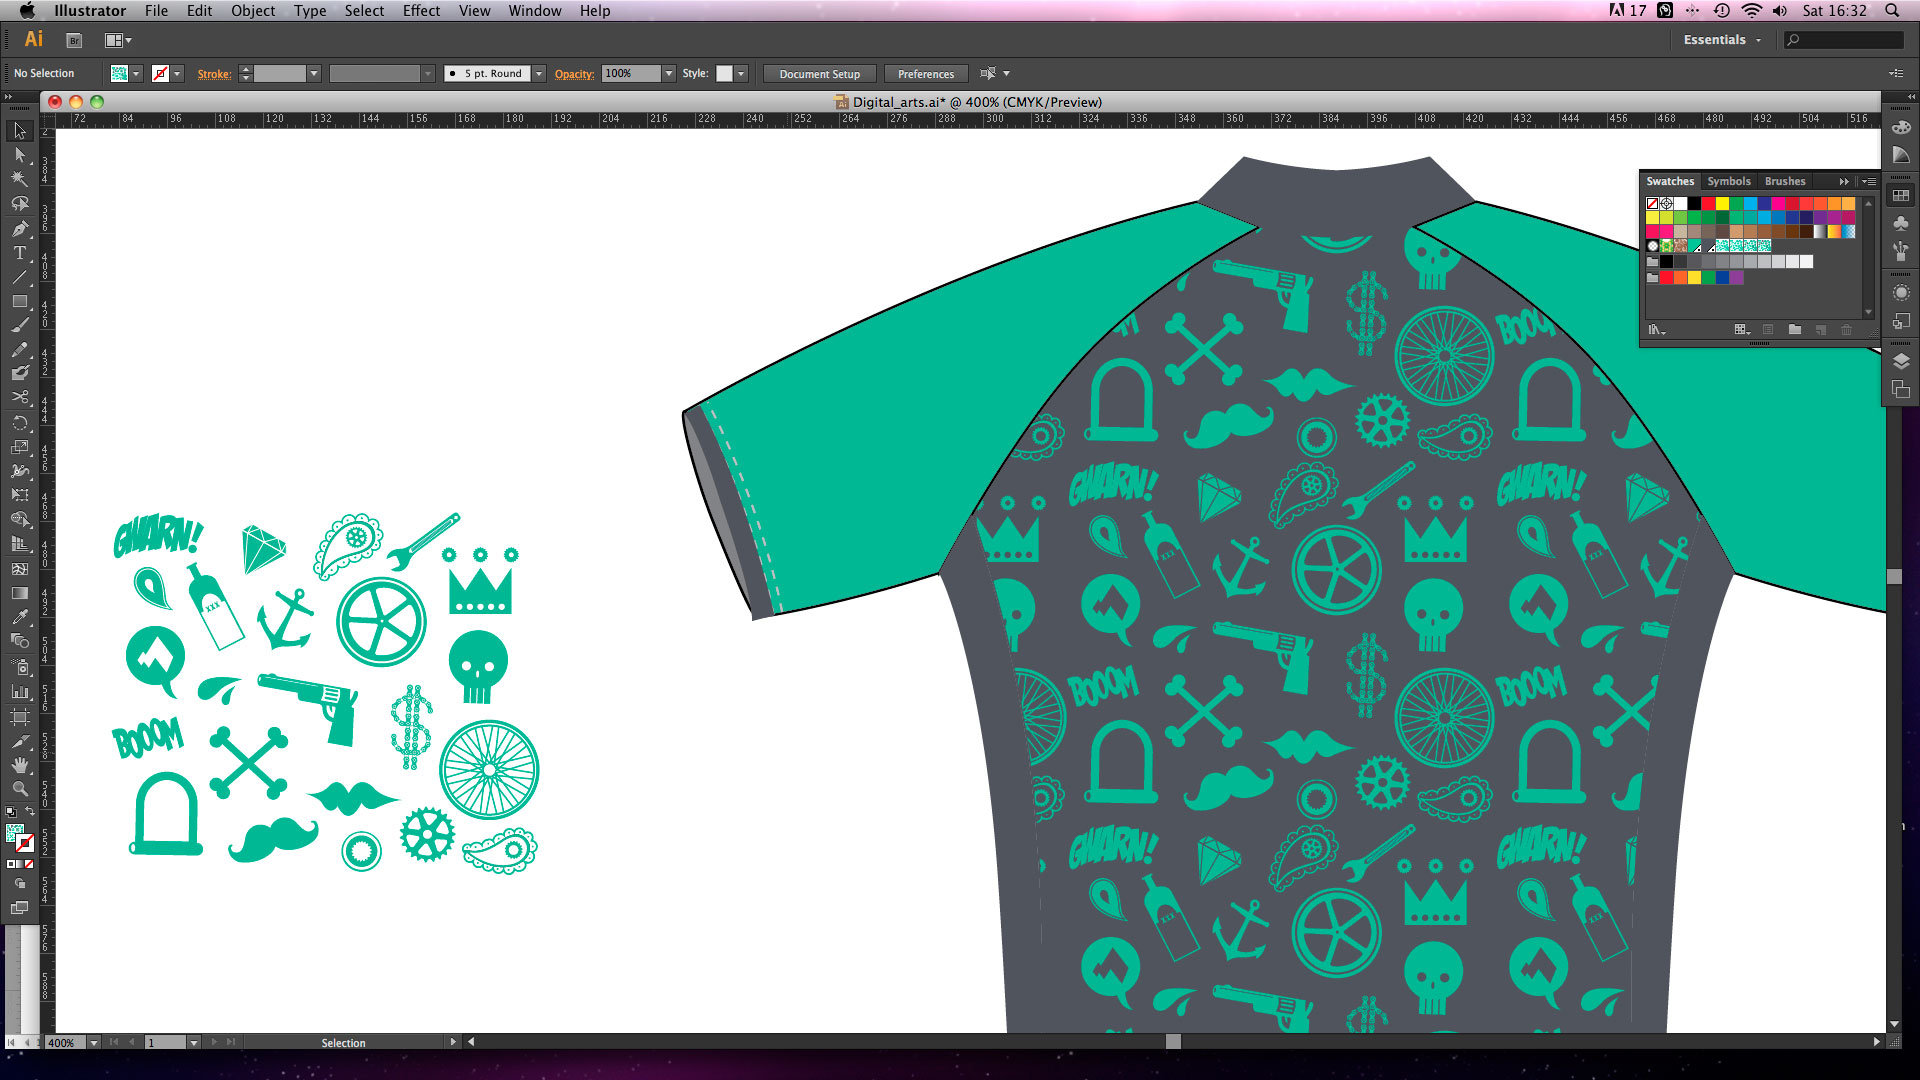 Design t shirt adobe illustrator tutorial - Illustrator Cs6 Tutorials 005